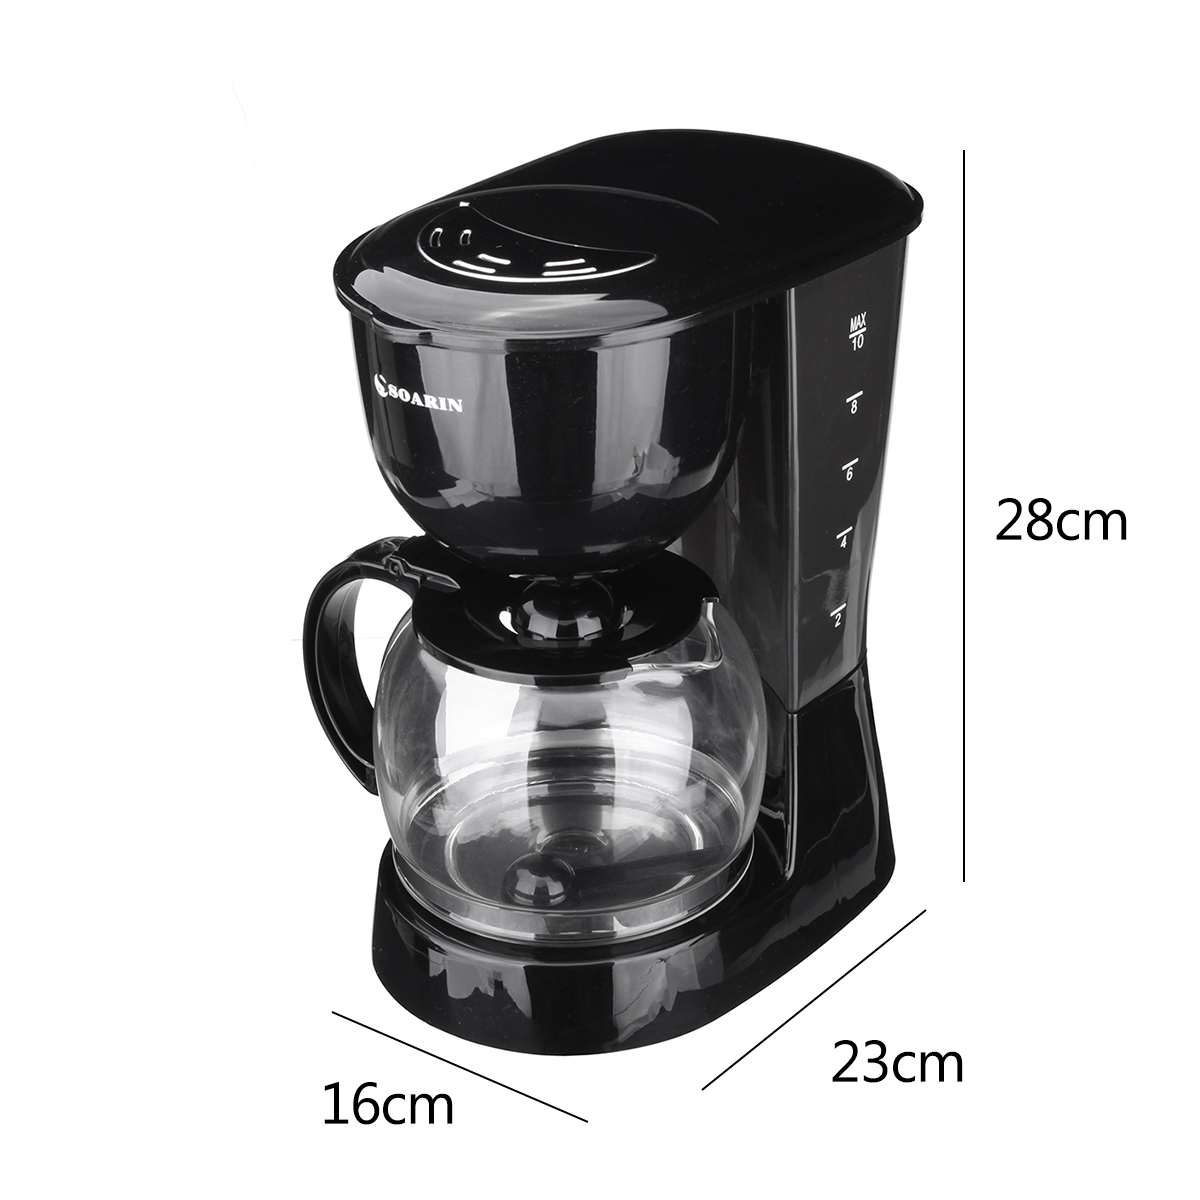 Soarin 1.25L 800W Electric Coffee Tea Maker Espresso Latte Machine Home Office Cafe Coffee Machine